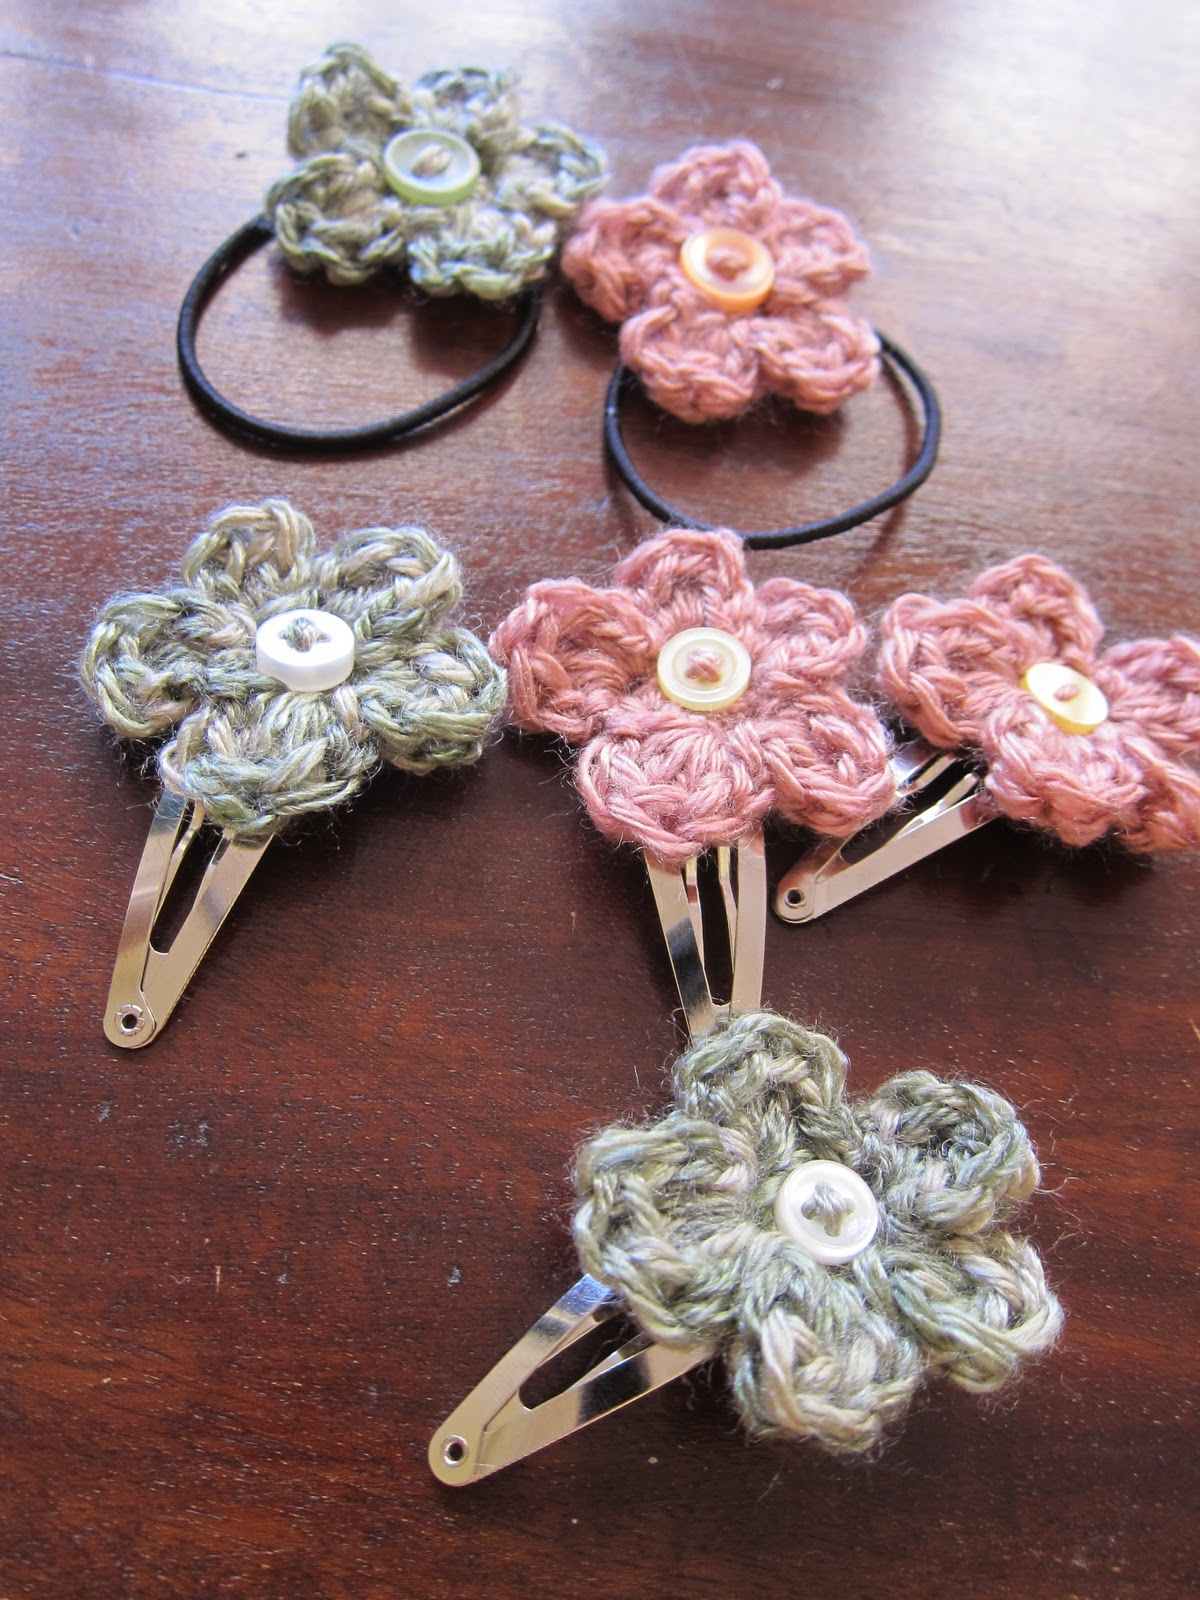 Crochet Rose Hair Clip Pattern : Mel P Designs: Free crochet hair clips and hair elastic pattern